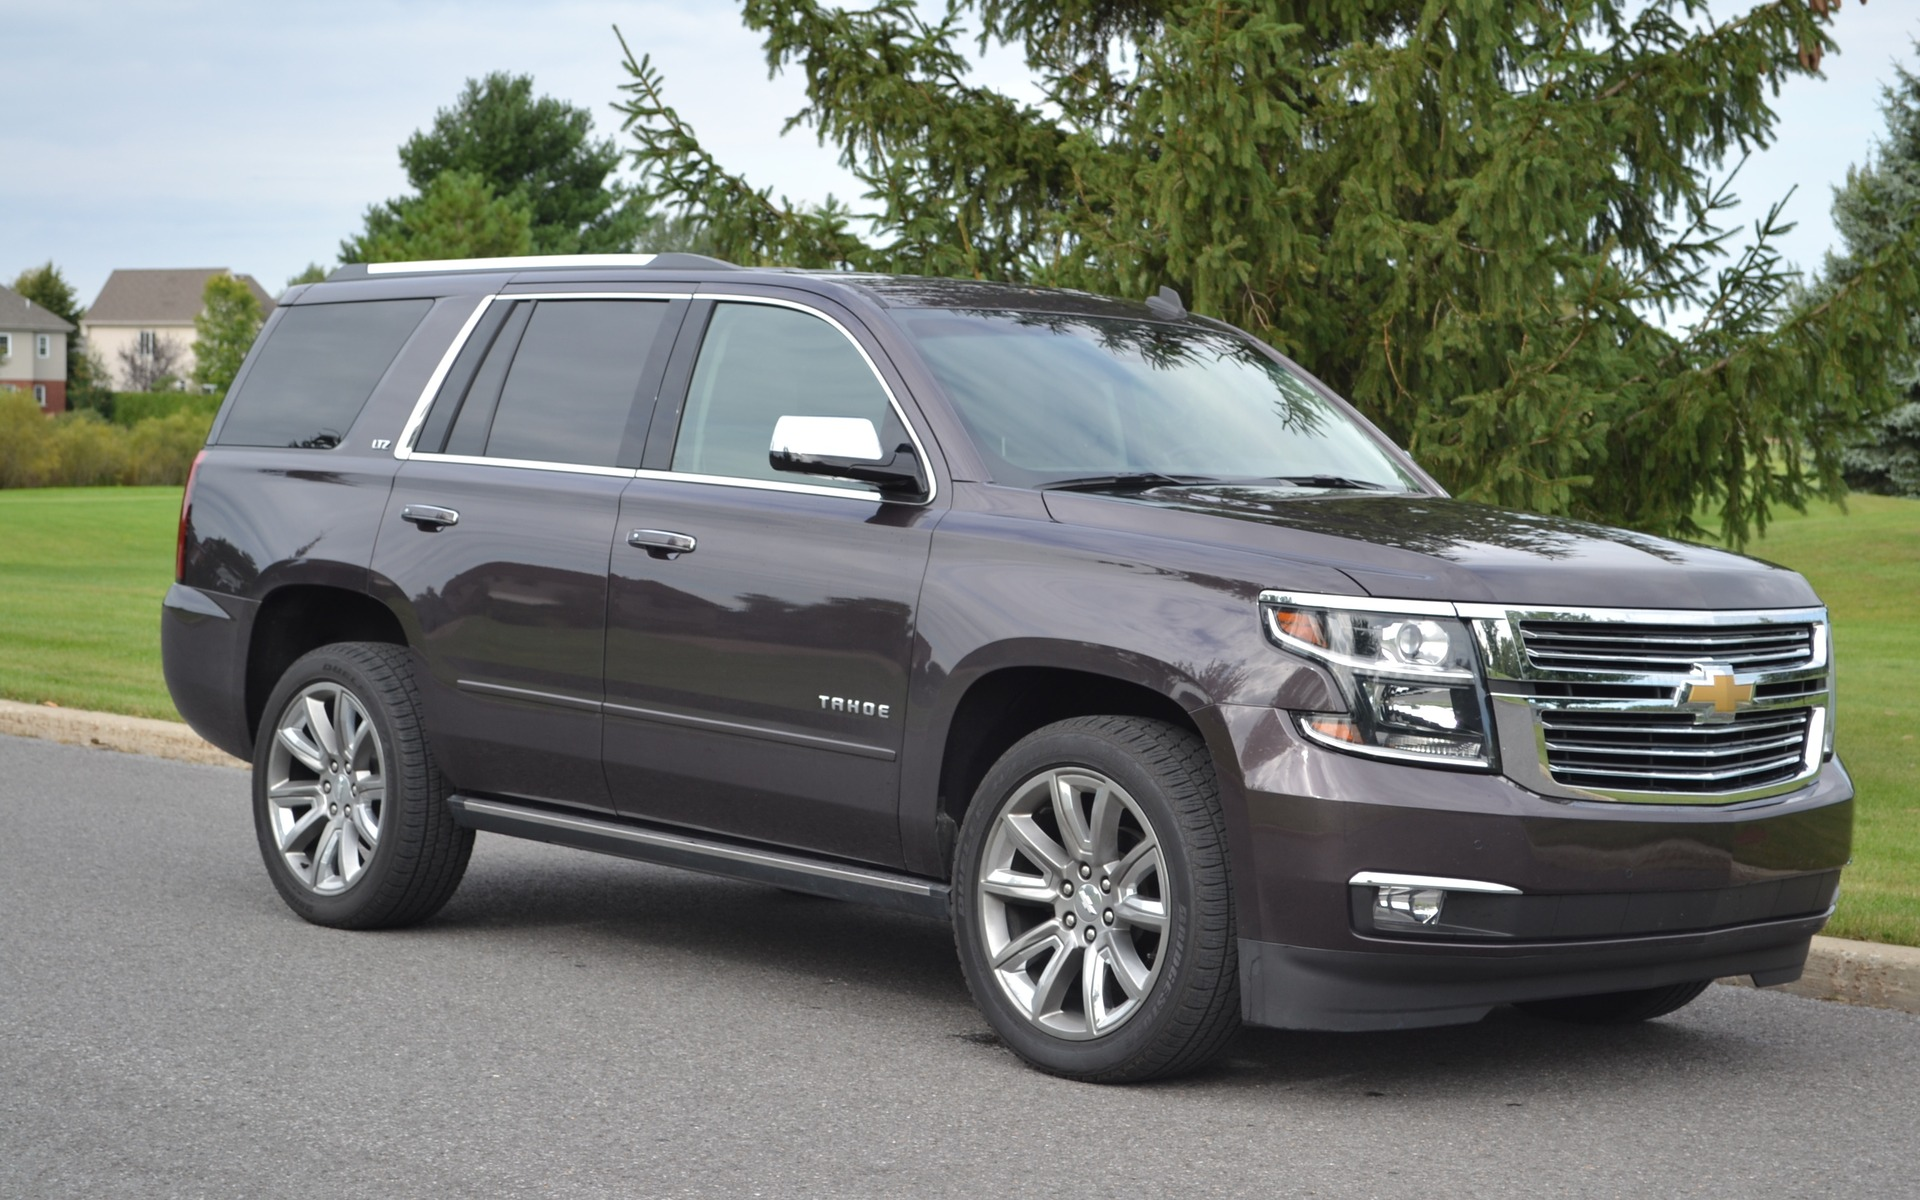 2016 chevrolet tahoe ls 4x4 specifications the car guide. Black Bedroom Furniture Sets. Home Design Ideas